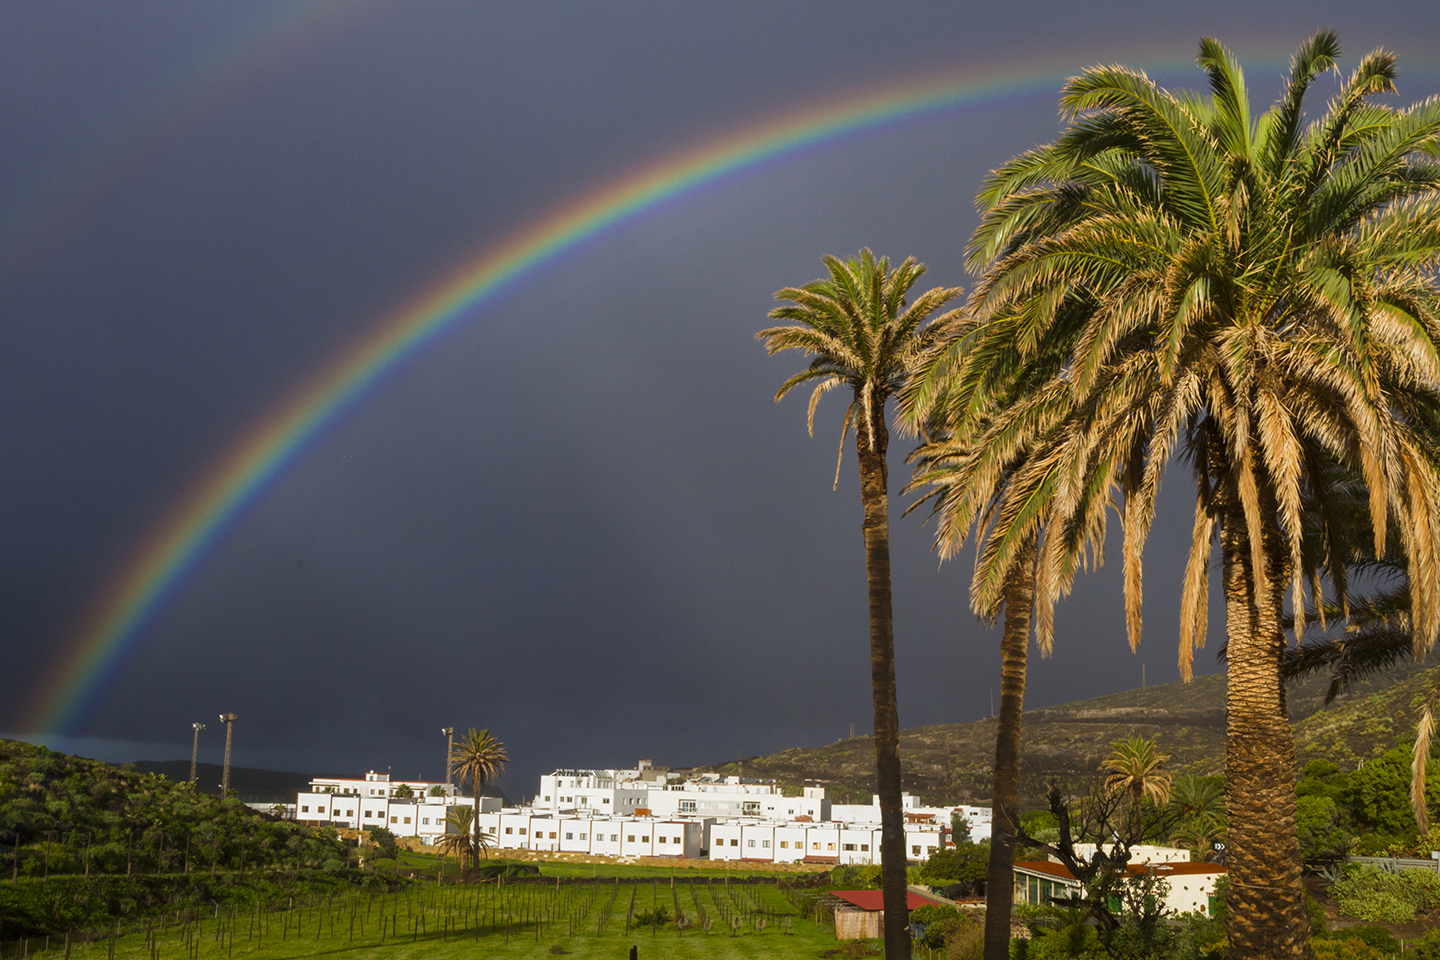 Agaete Valley rainbow and palms